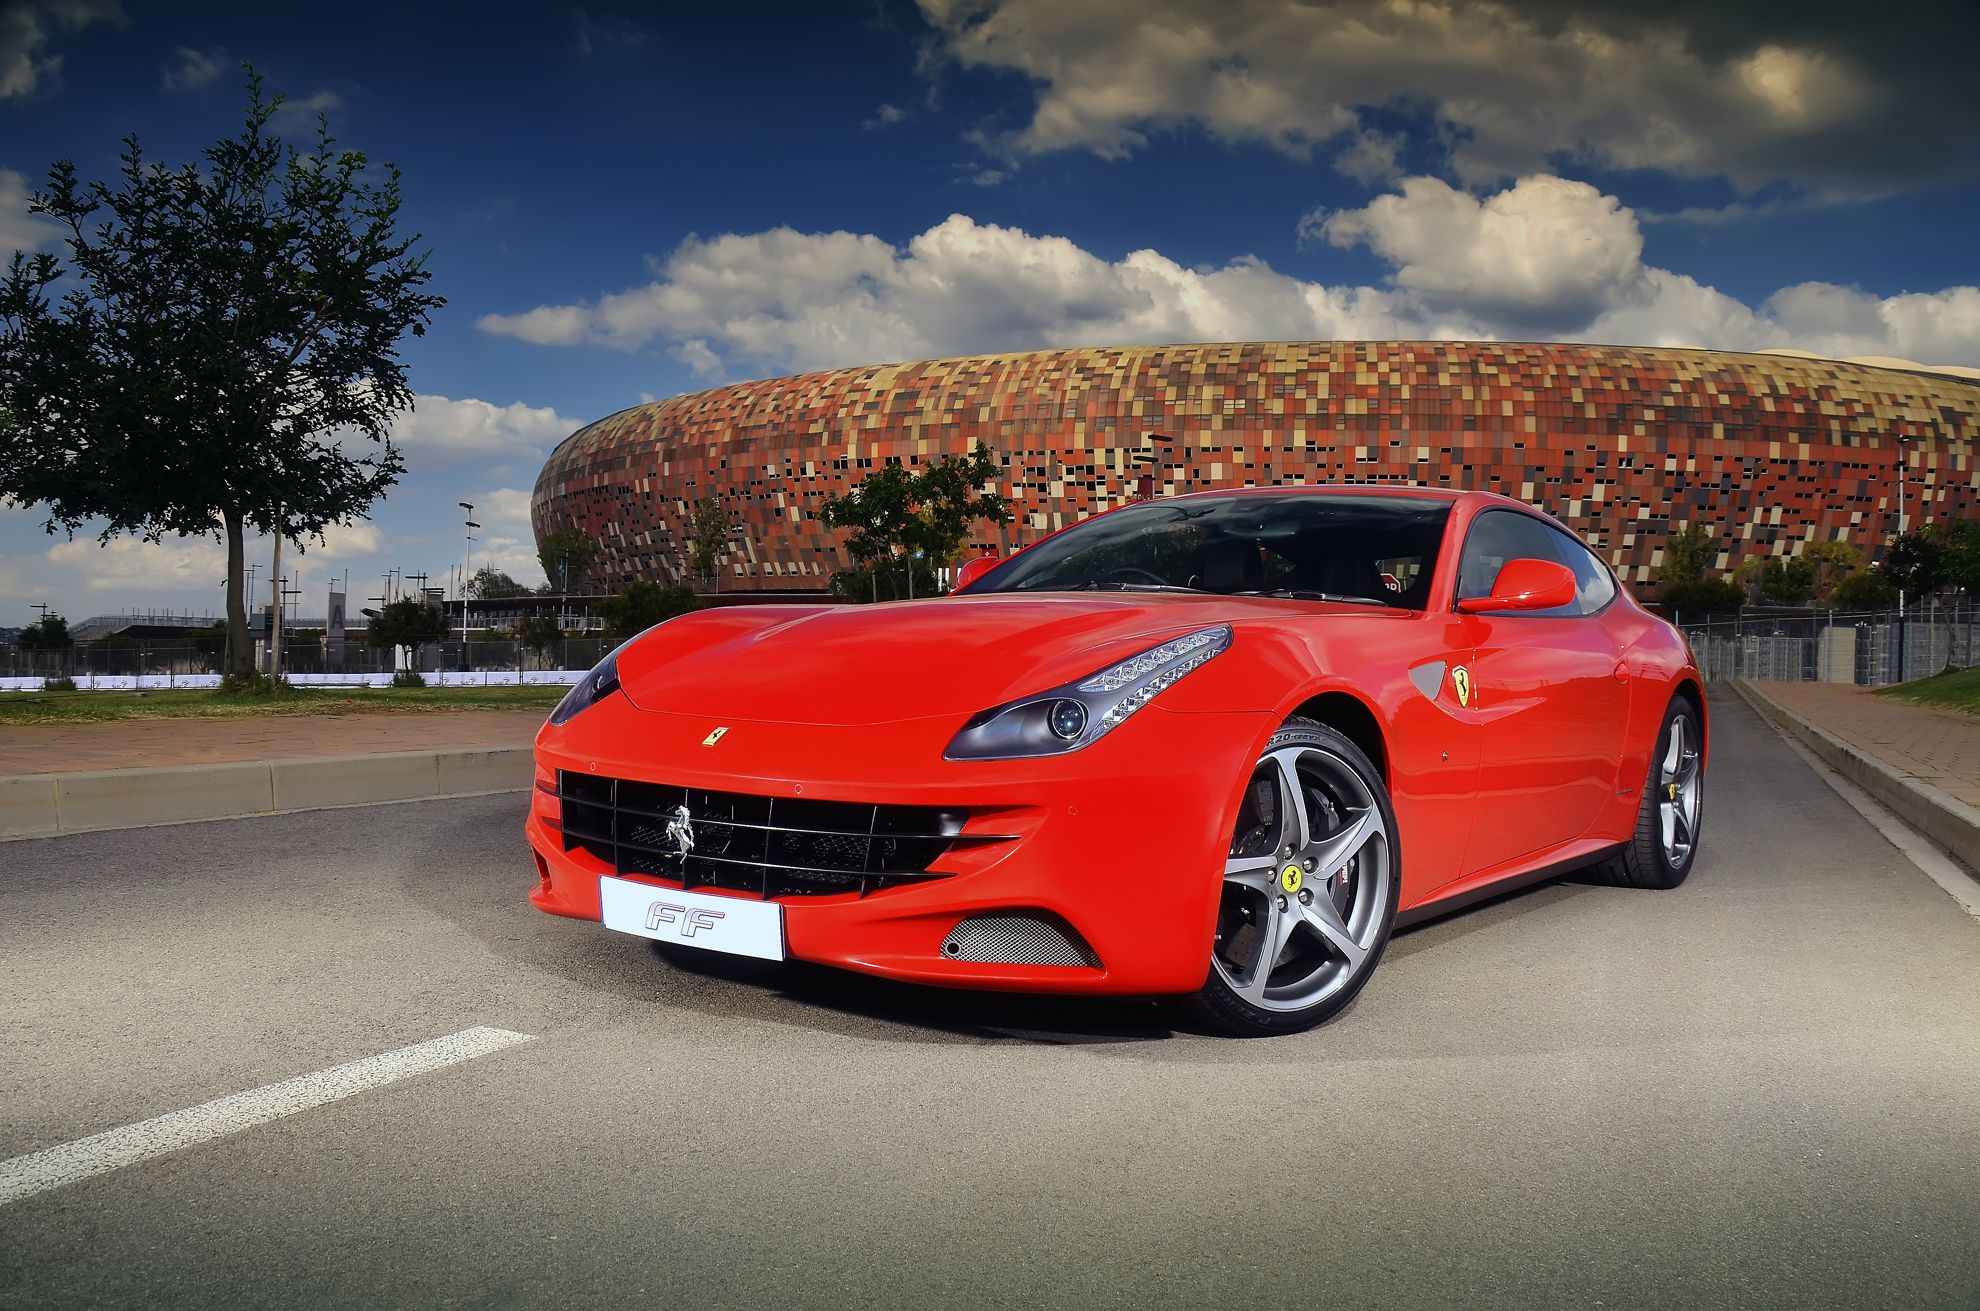 Ferrari Cars In South Africa Are Hot Viglietti Motors